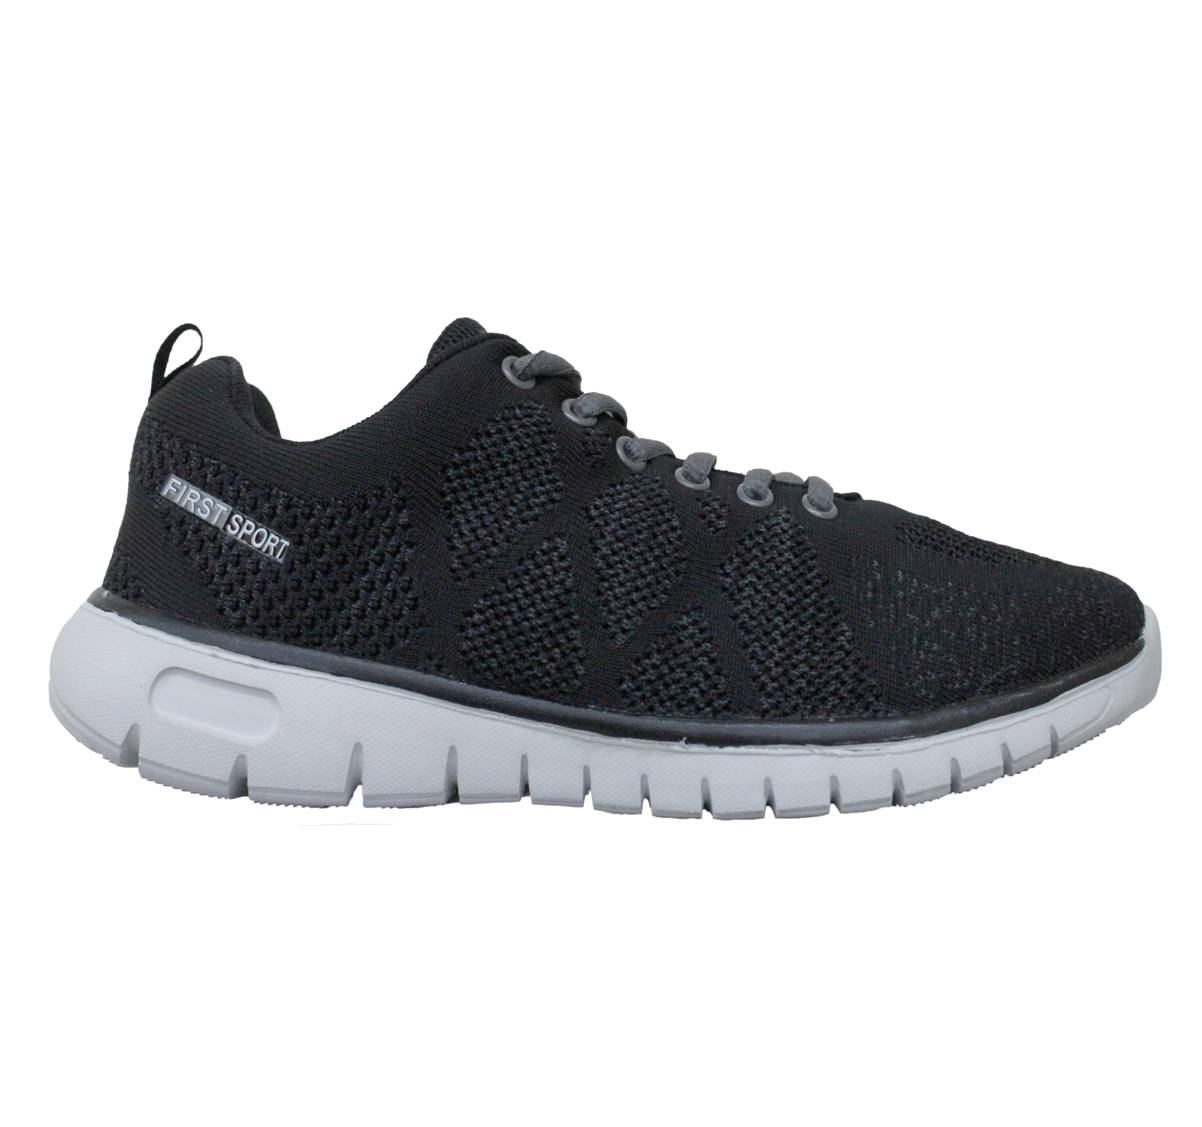 sports shoes b9411 2e6c4 (sale) First Sport Men Running Shoes: (R083113-M3) Black